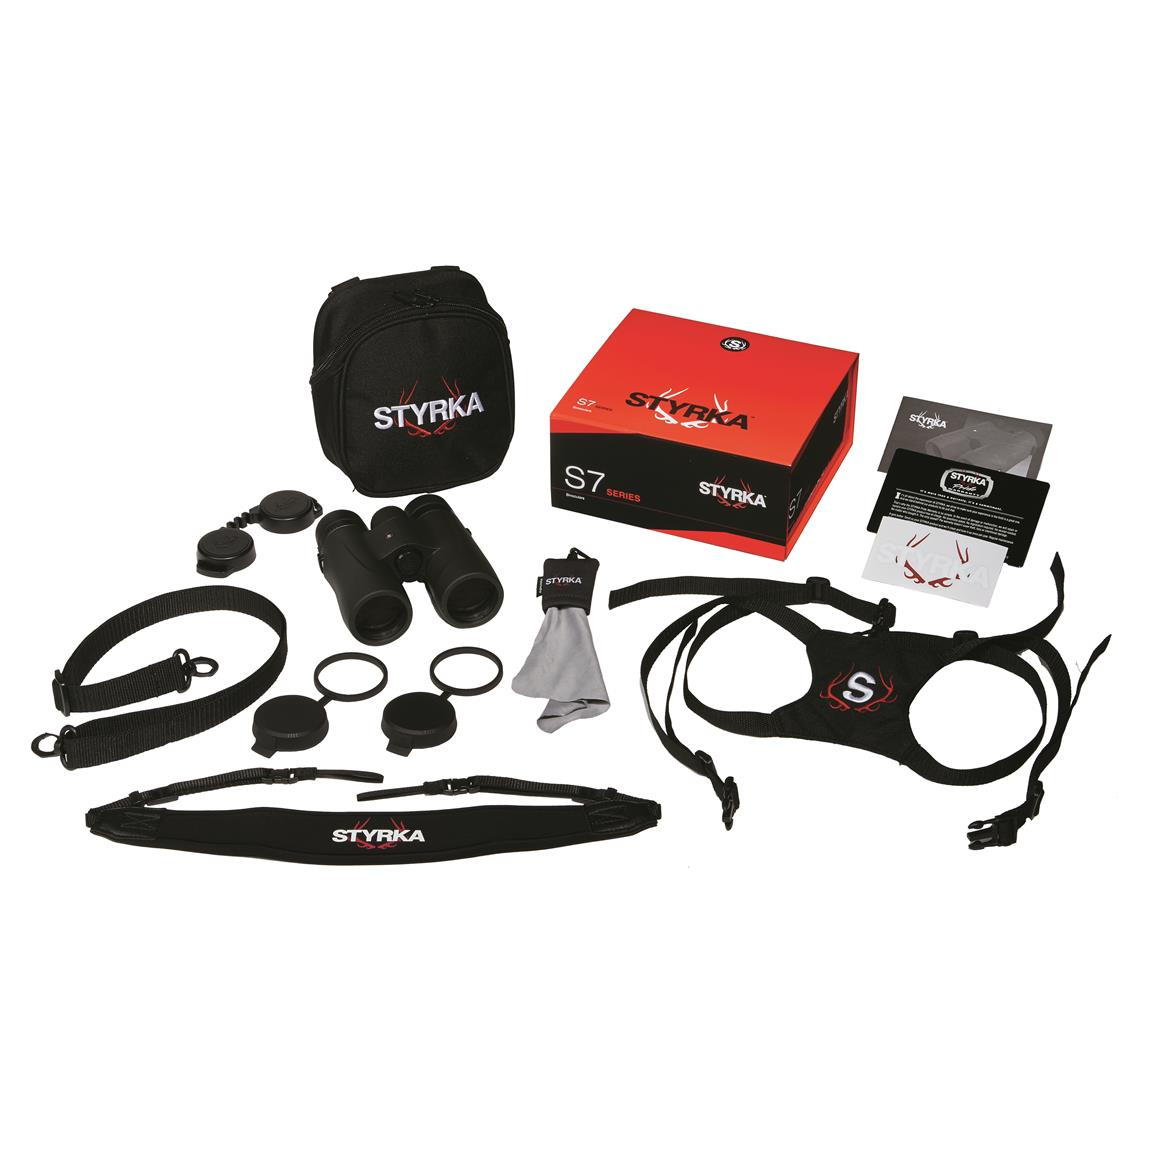 Includes tethered lens covers, padded neck strap, cleaning cloth and custom carry case with harness.